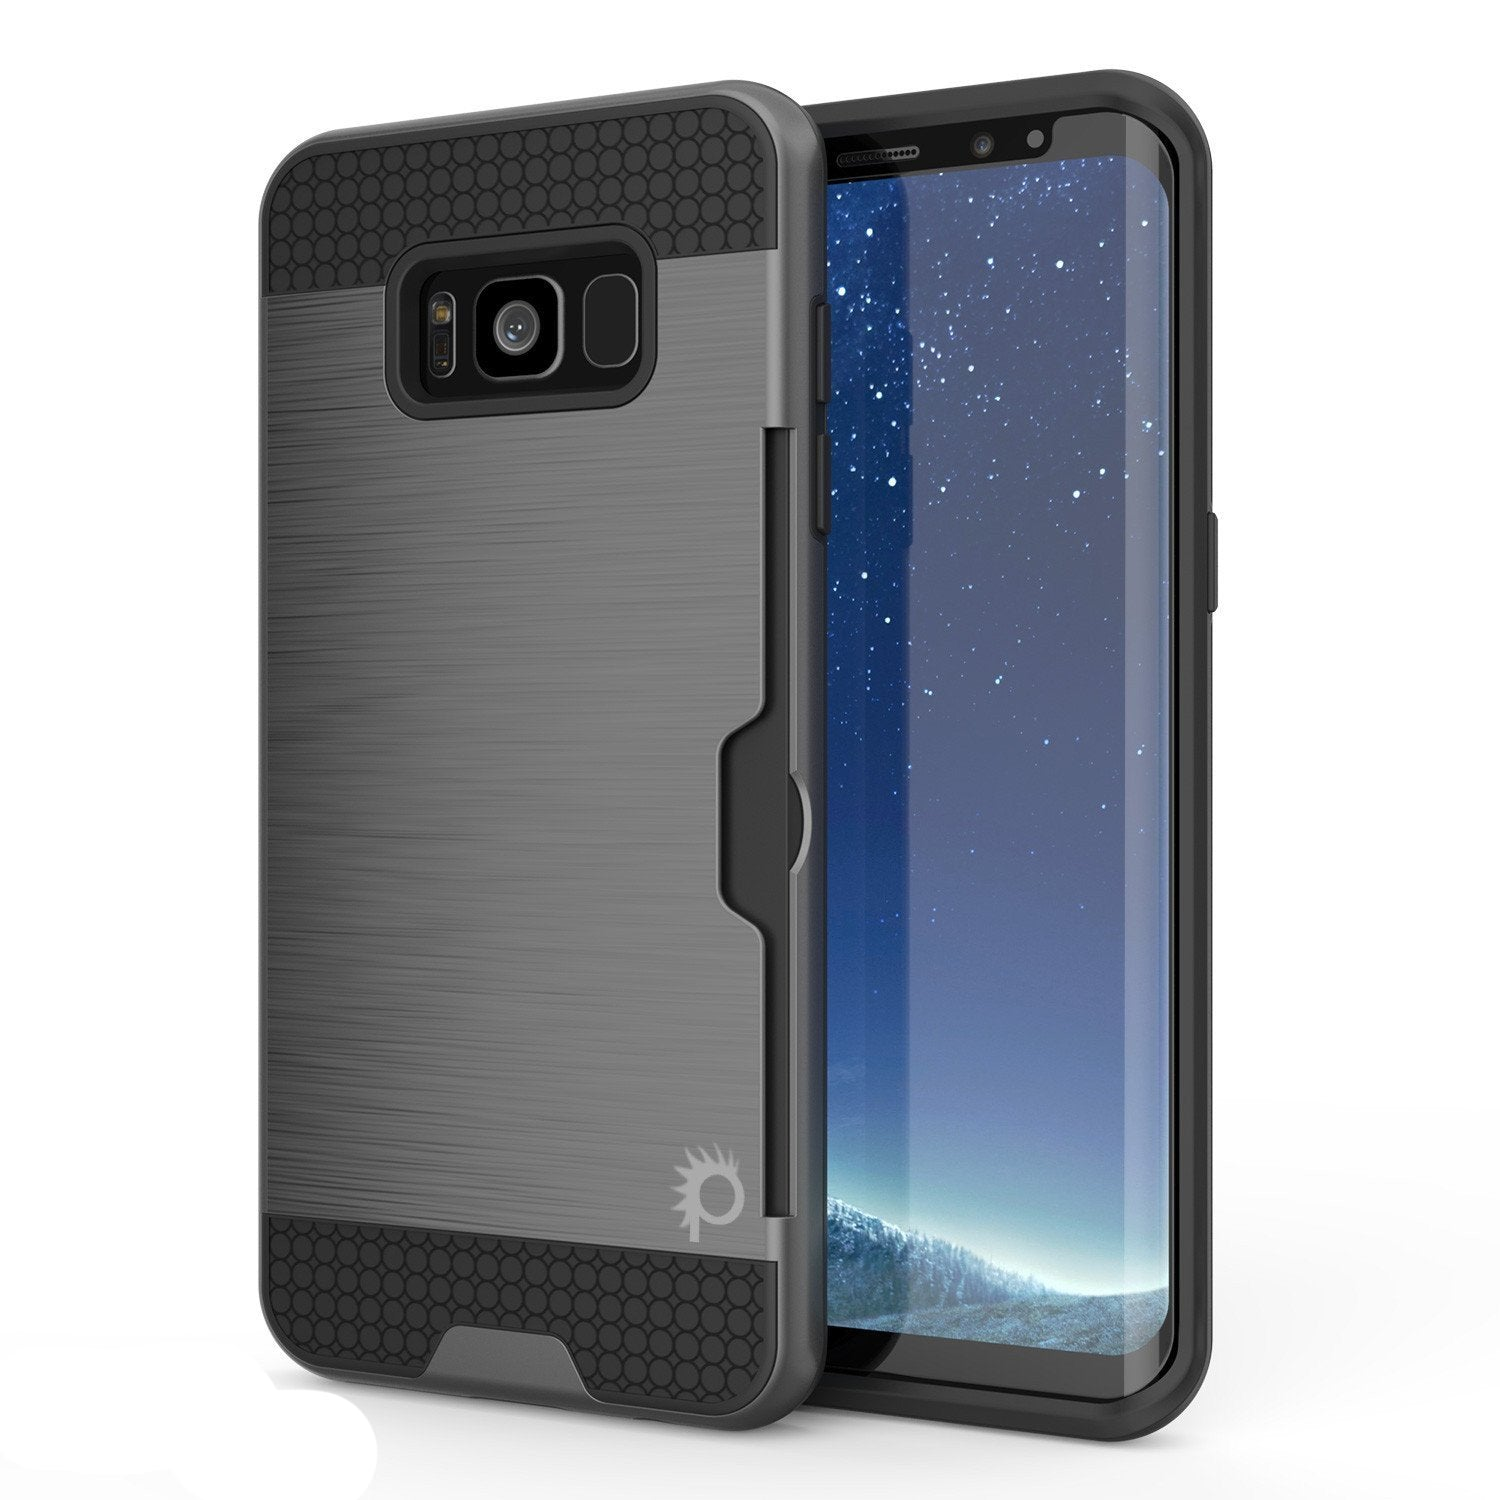 Galaxy S8 Case, PUNKcase [SLOT Series] Dual-Layer Armor Cover w/Integrated Anti-Shock System, Credit Card Slot & Screen Protector [Grey]